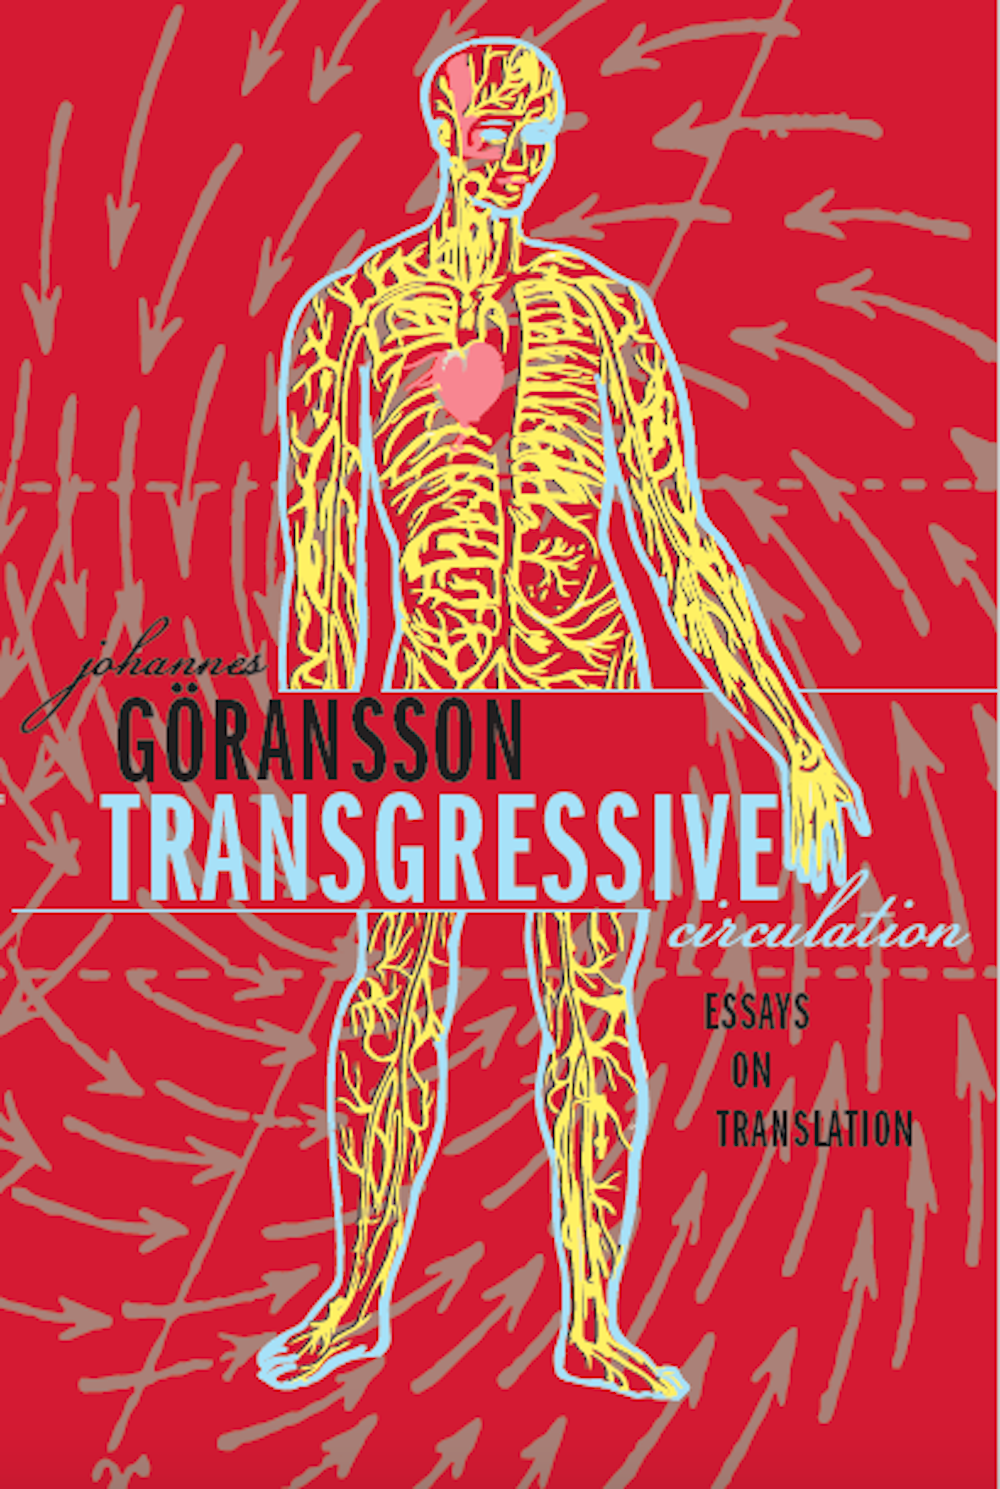 Transgressive Circulation By Johannes Göransson